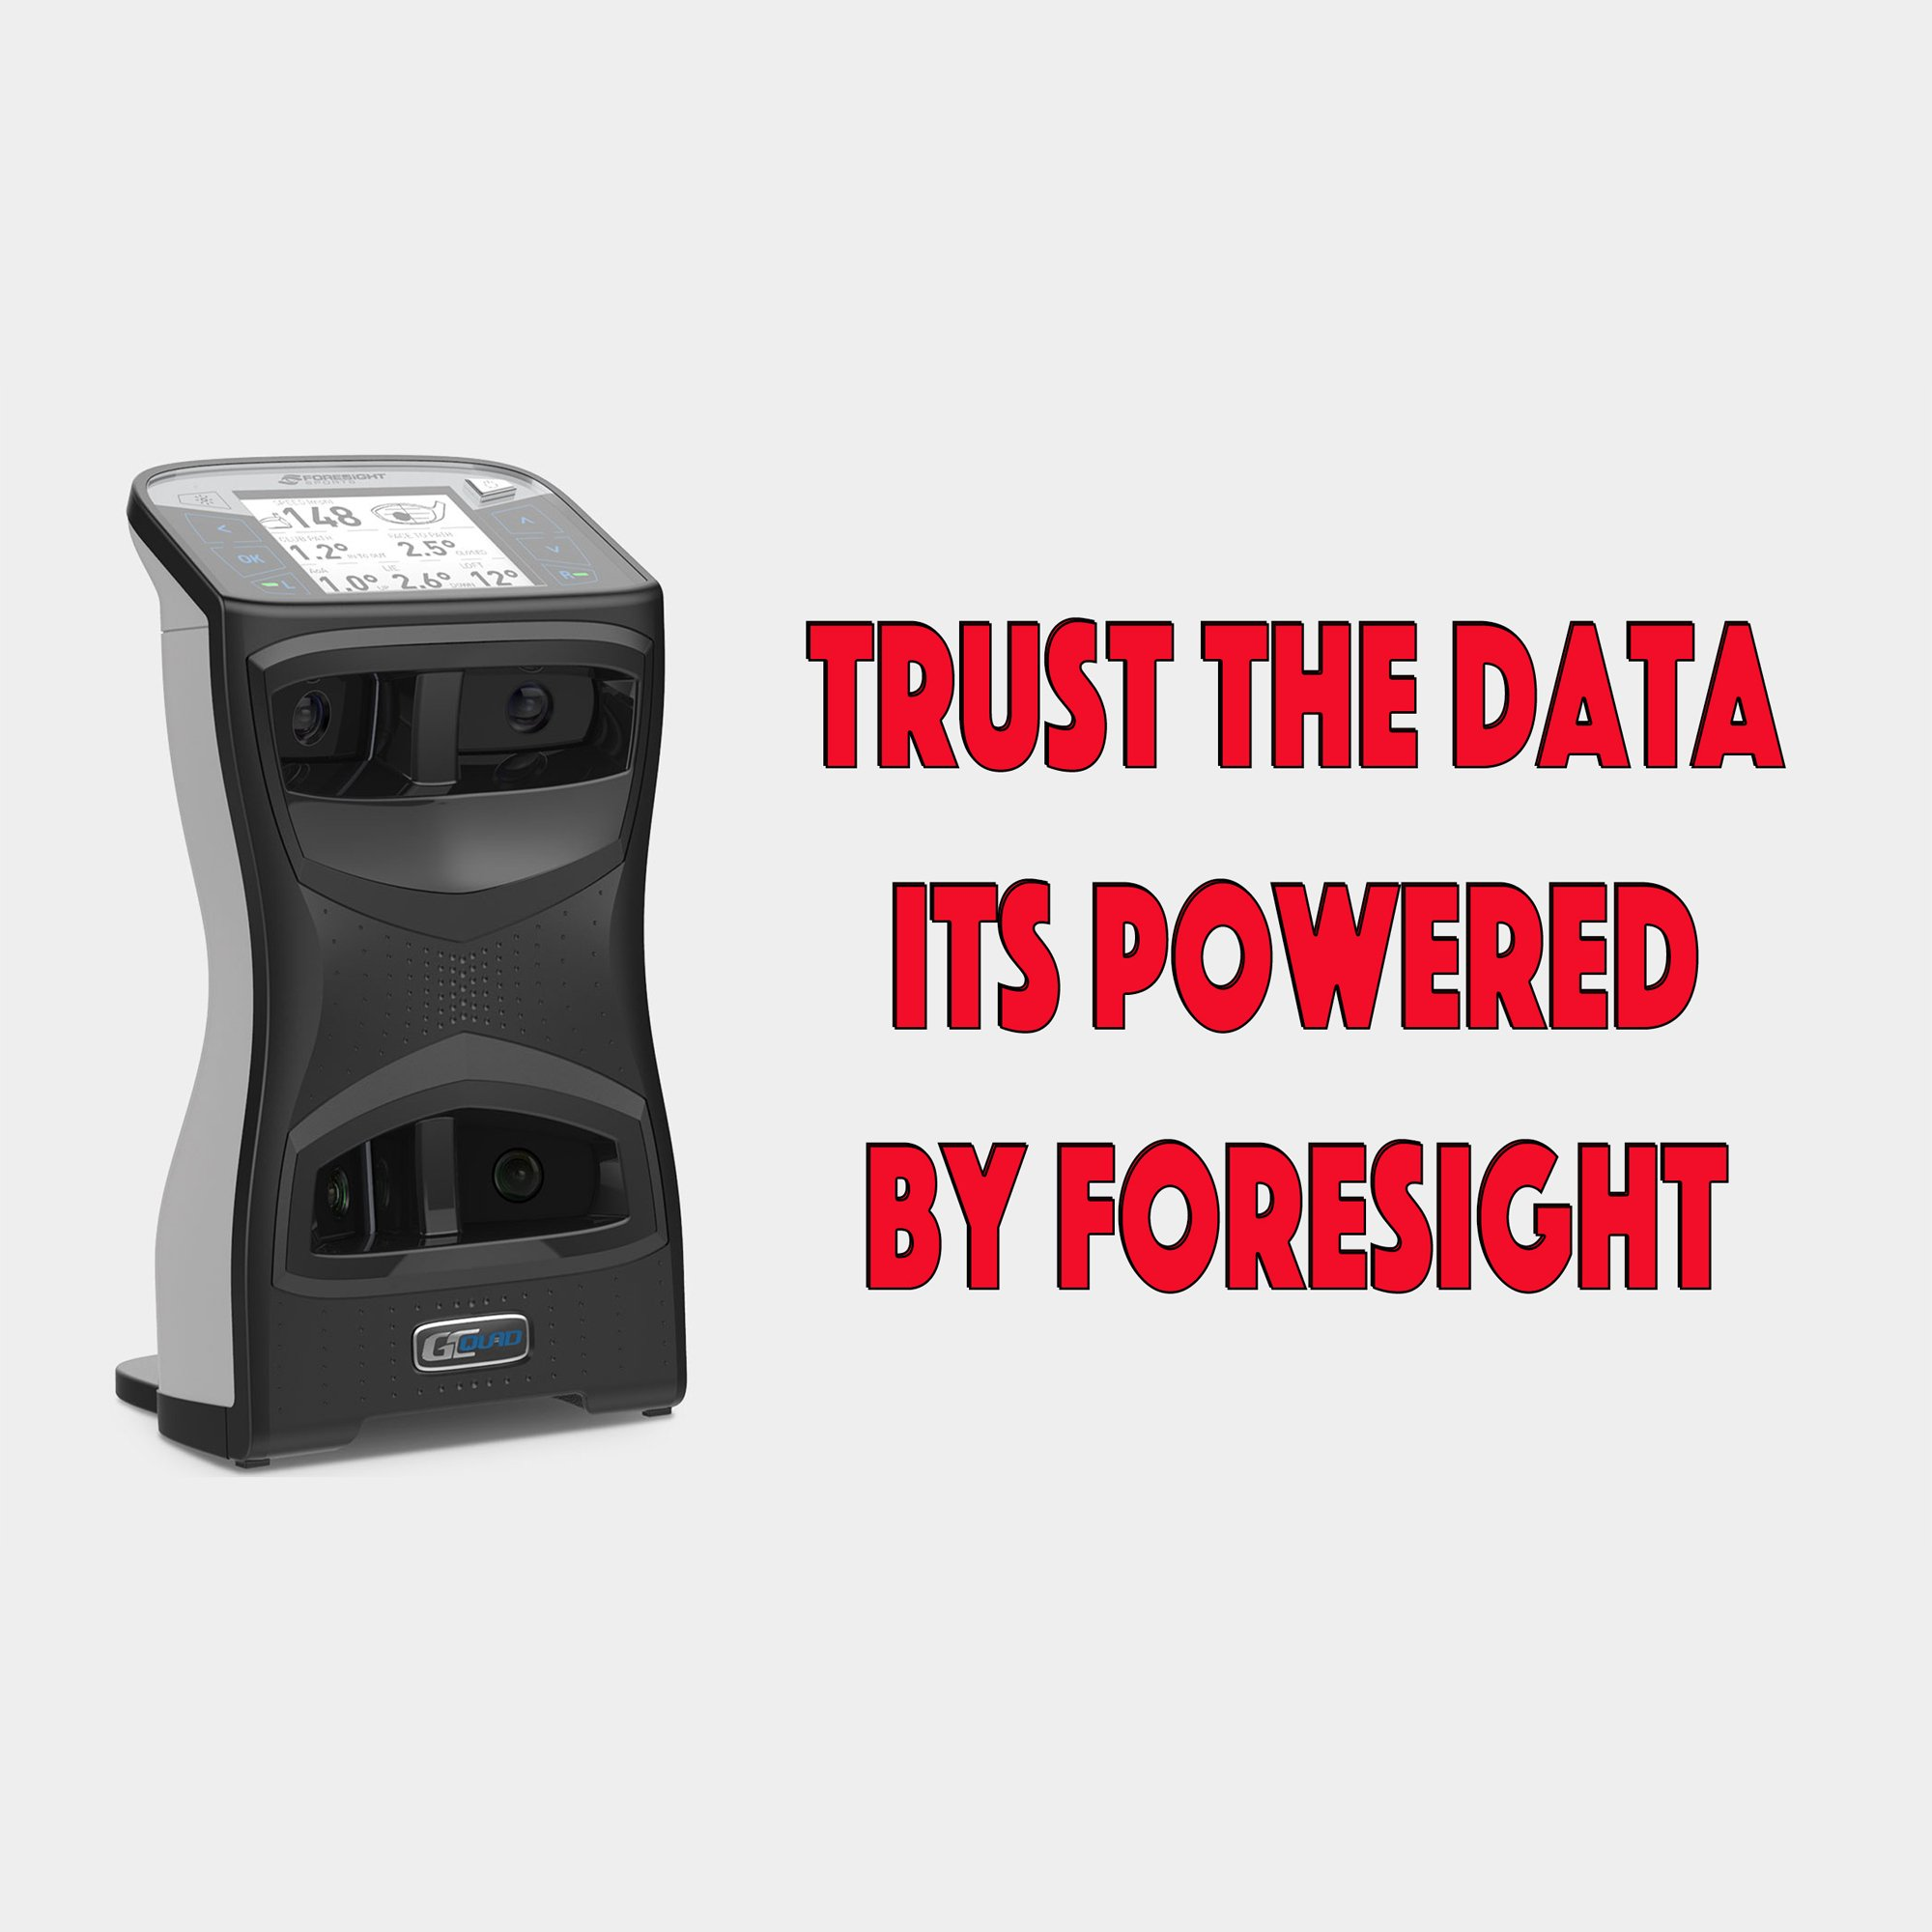 Trust the Data, It's Powered by Foresight